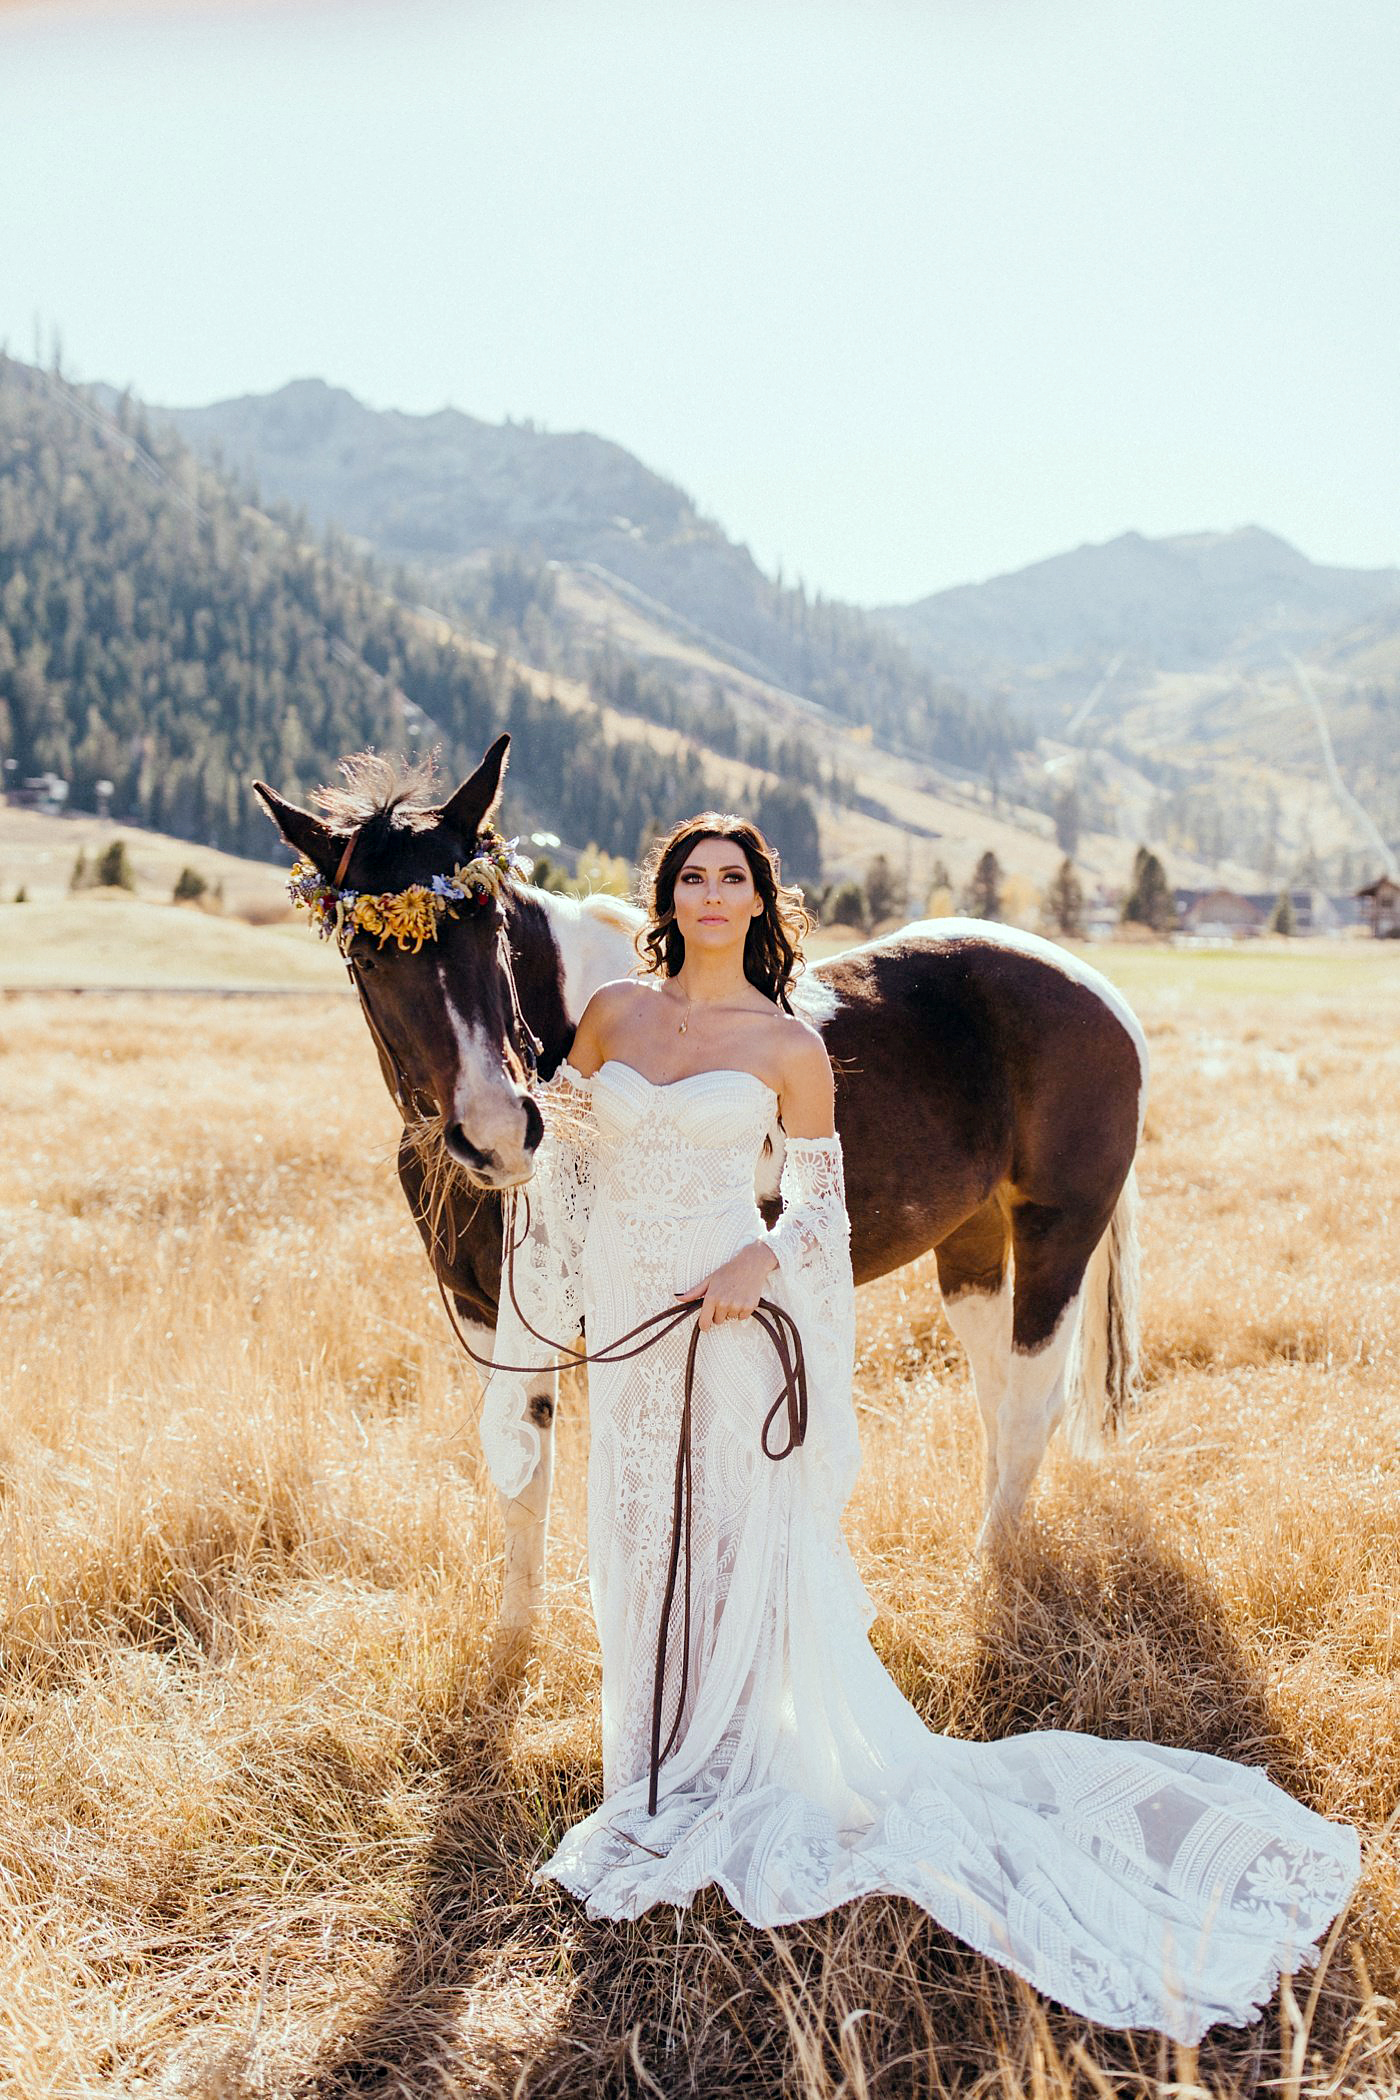 Becca Kufrin Garrett Yrigoyen Pre-Wedding Shoot - Kufrin stunned in an off-the-shoulder lace Rue De Seine gown from Swoon Bridal as she stood alongside a horse adorned with flowers.